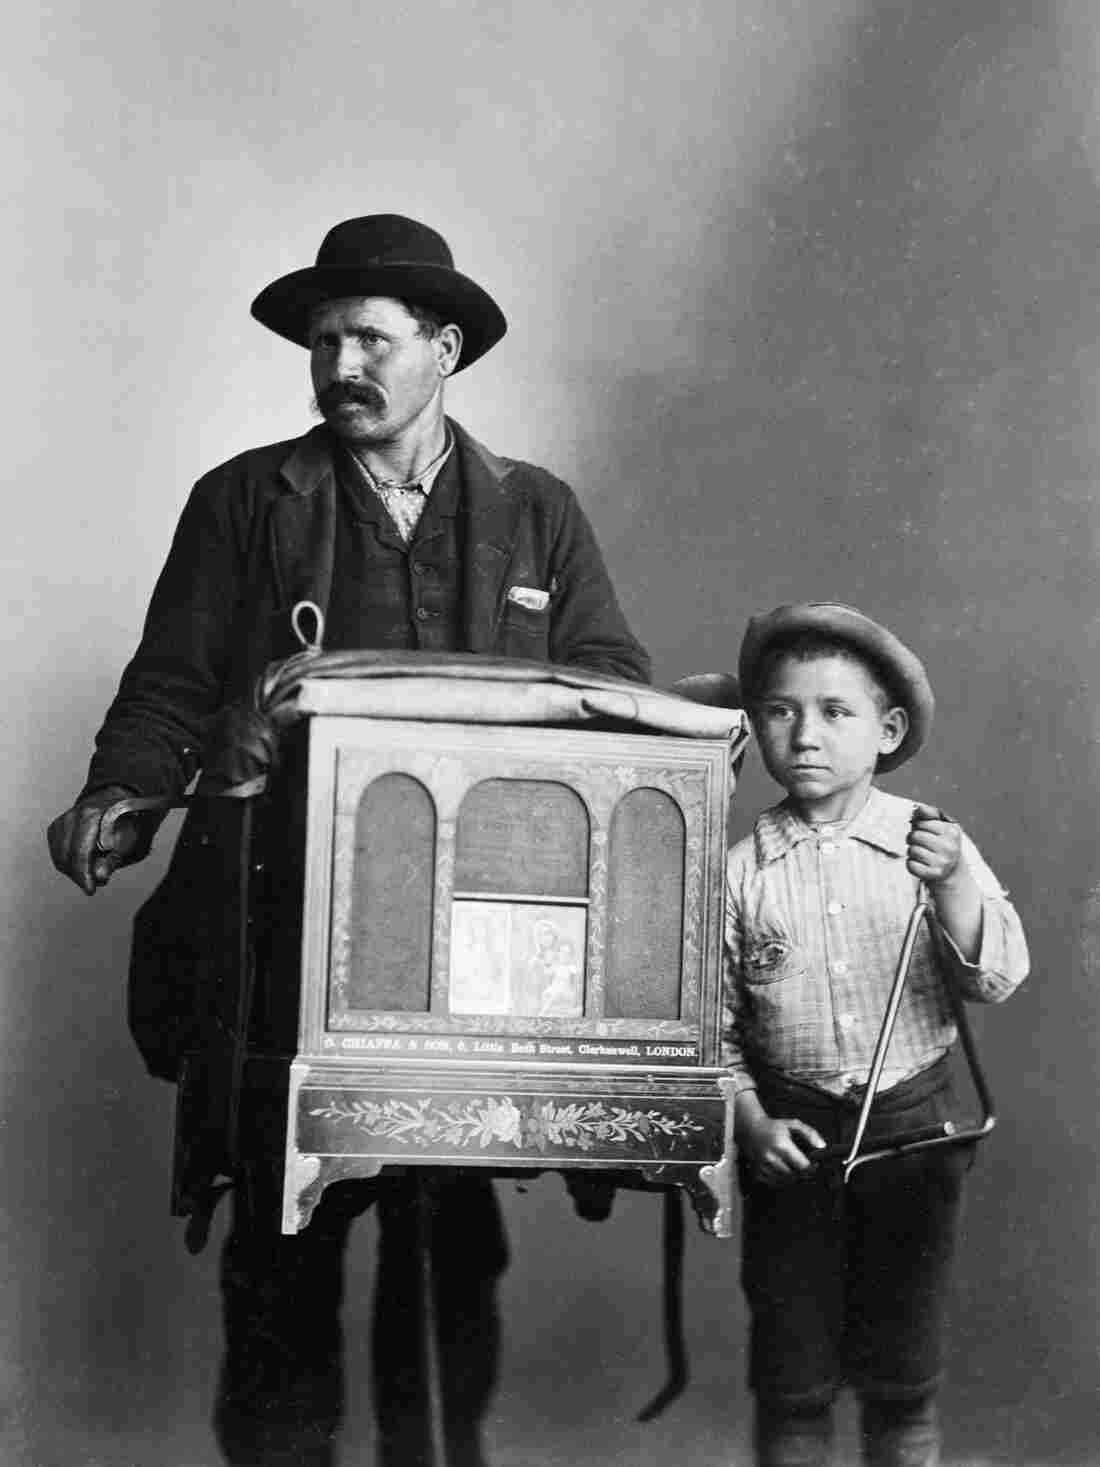 An organ grinder and child in Chicago, 1891.